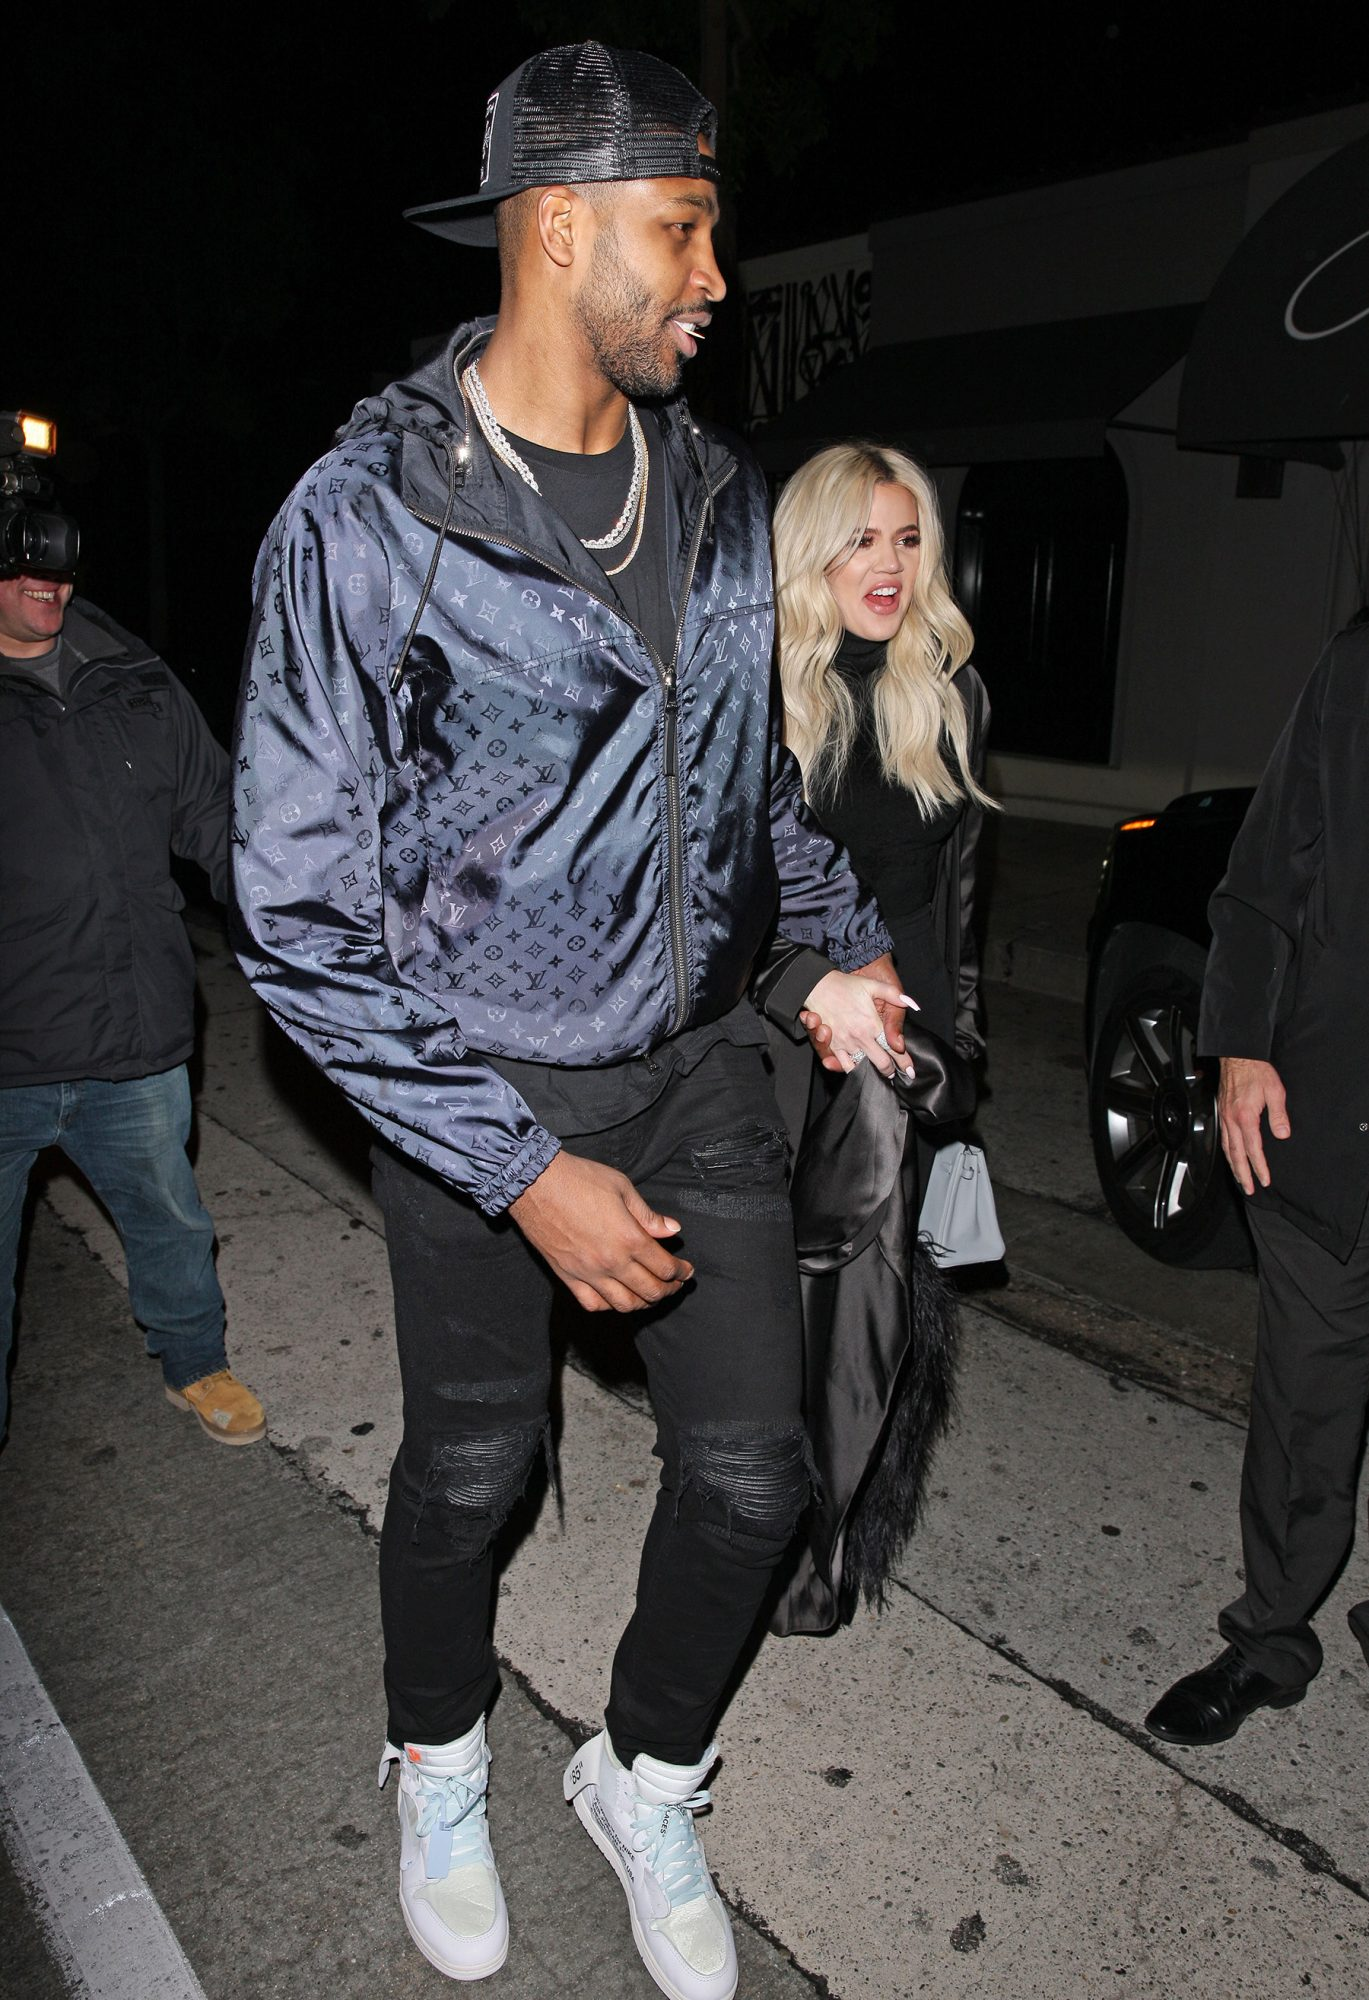 Khlo? Kardashian And Tristan Thompson Head To LA Hot Spots Craig's For Dinner